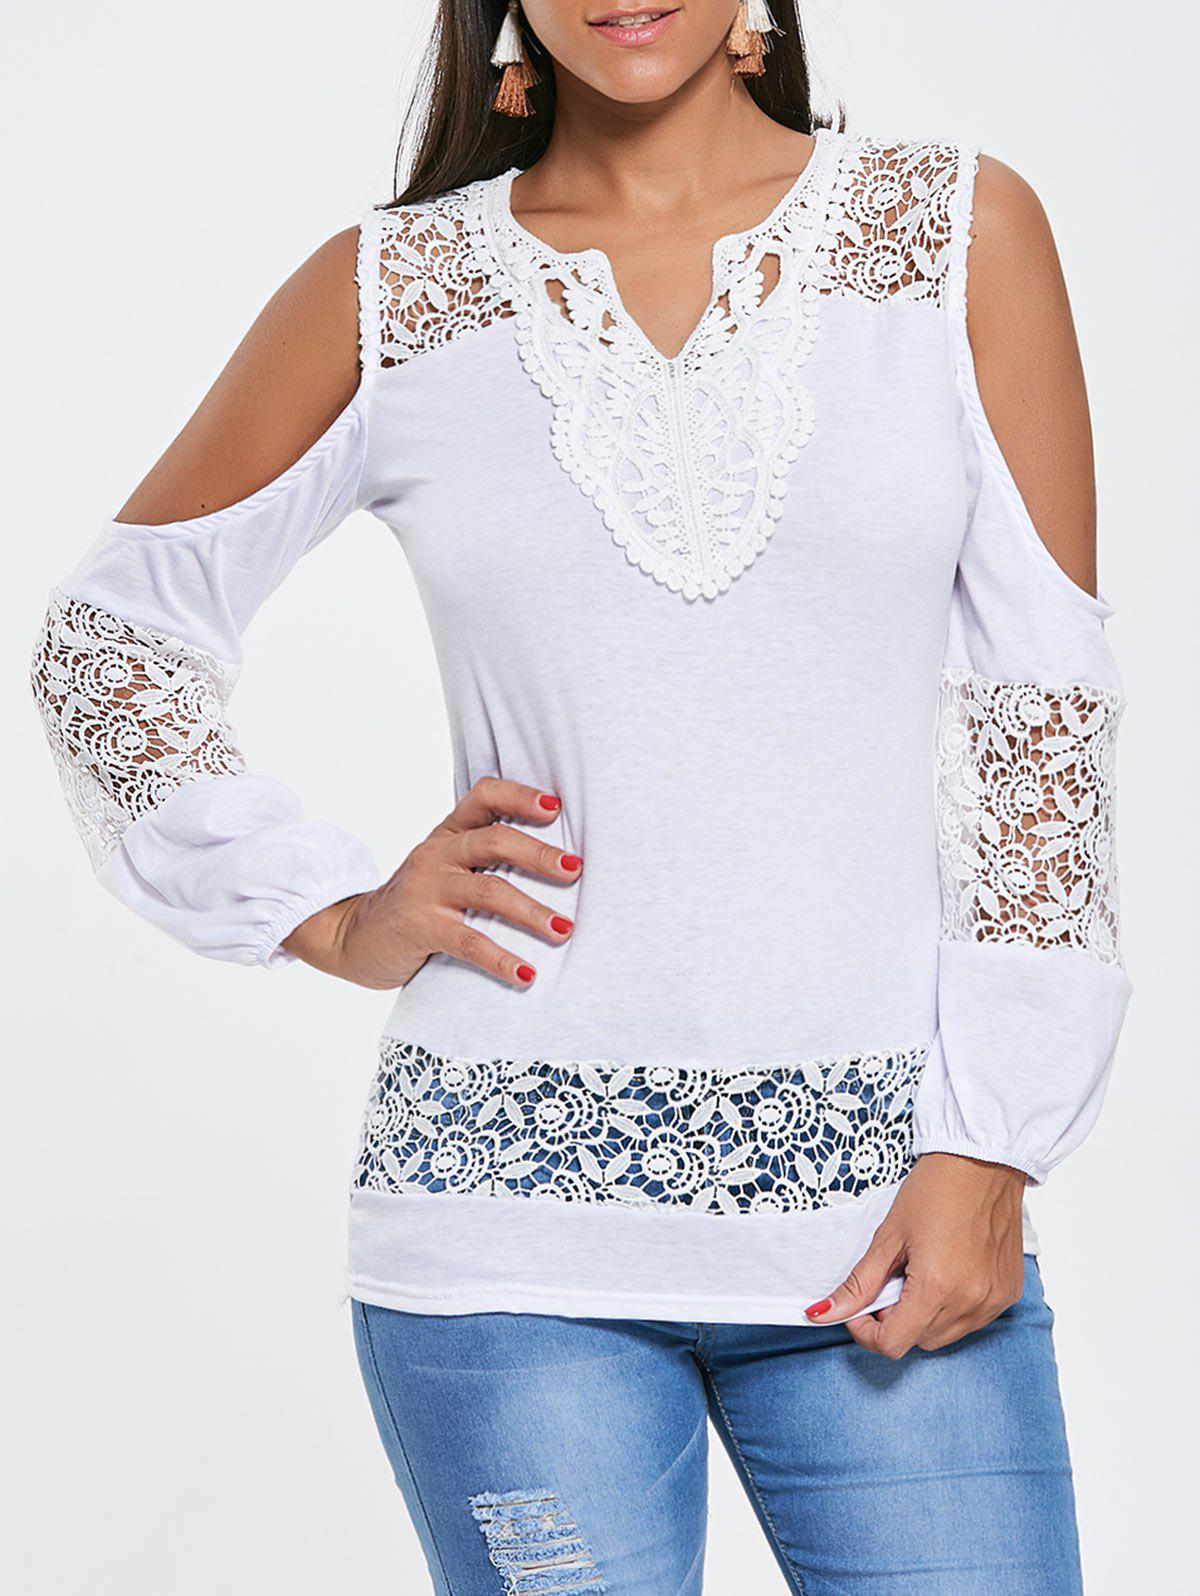 Lace Crochet Cold Shoulder Tunic TeeWOMEN<br><br>Size: 2XL; Color: WHITE; Material: Polyester; Shirt Length: Long; Sleeve Length: Full; Collar: V-Neck; Style: Fashion; Pattern Type: Patchwork; Season: Fall,Spring; Weight: 0.2500kg; Package Contents: 1 x T-shirt;